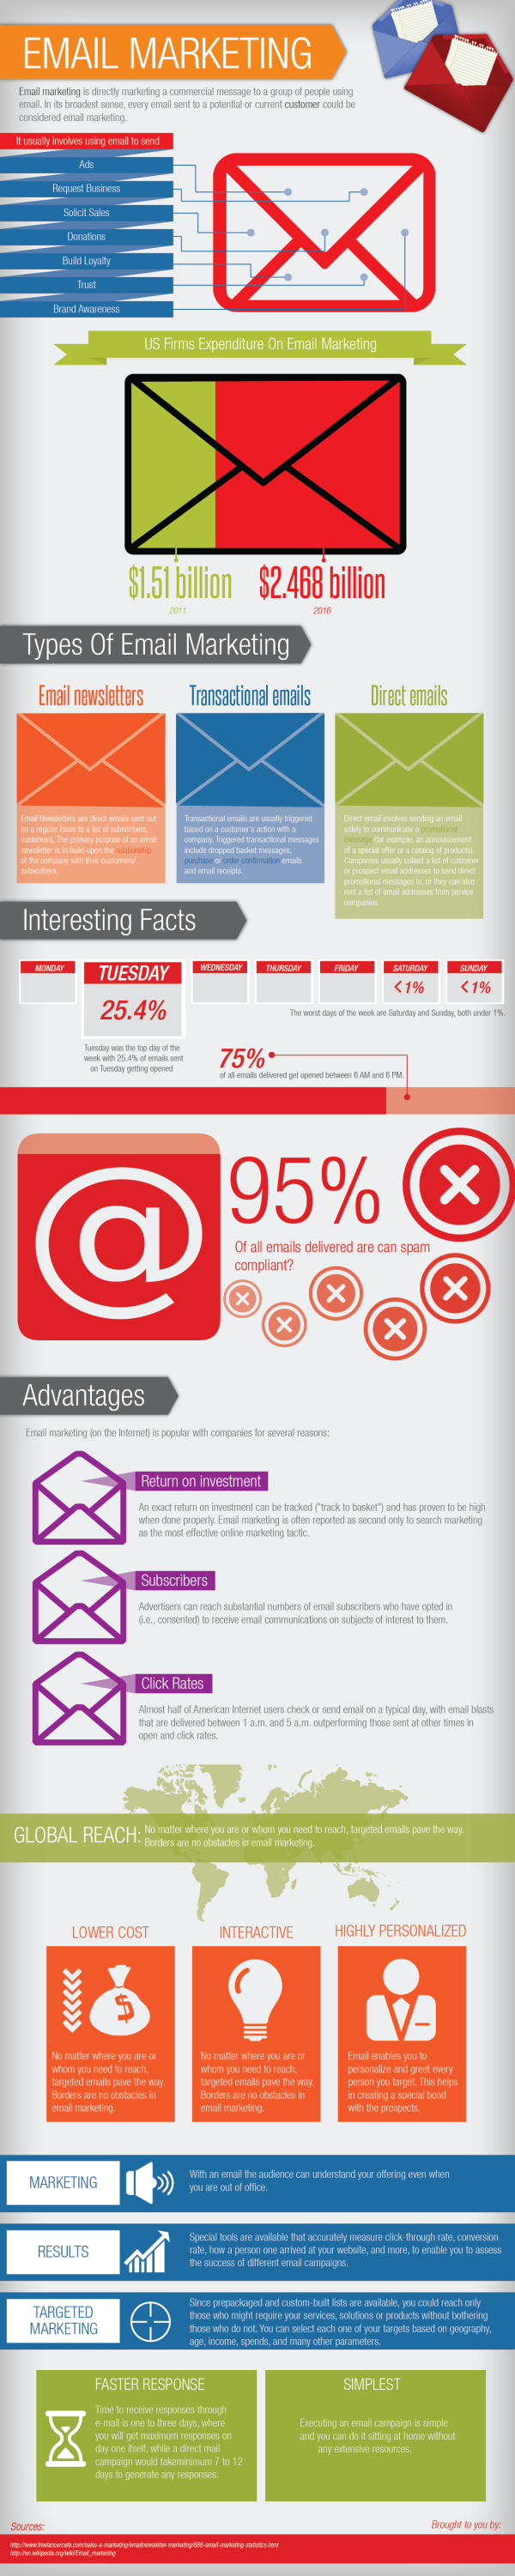 Email Marketing resized 600